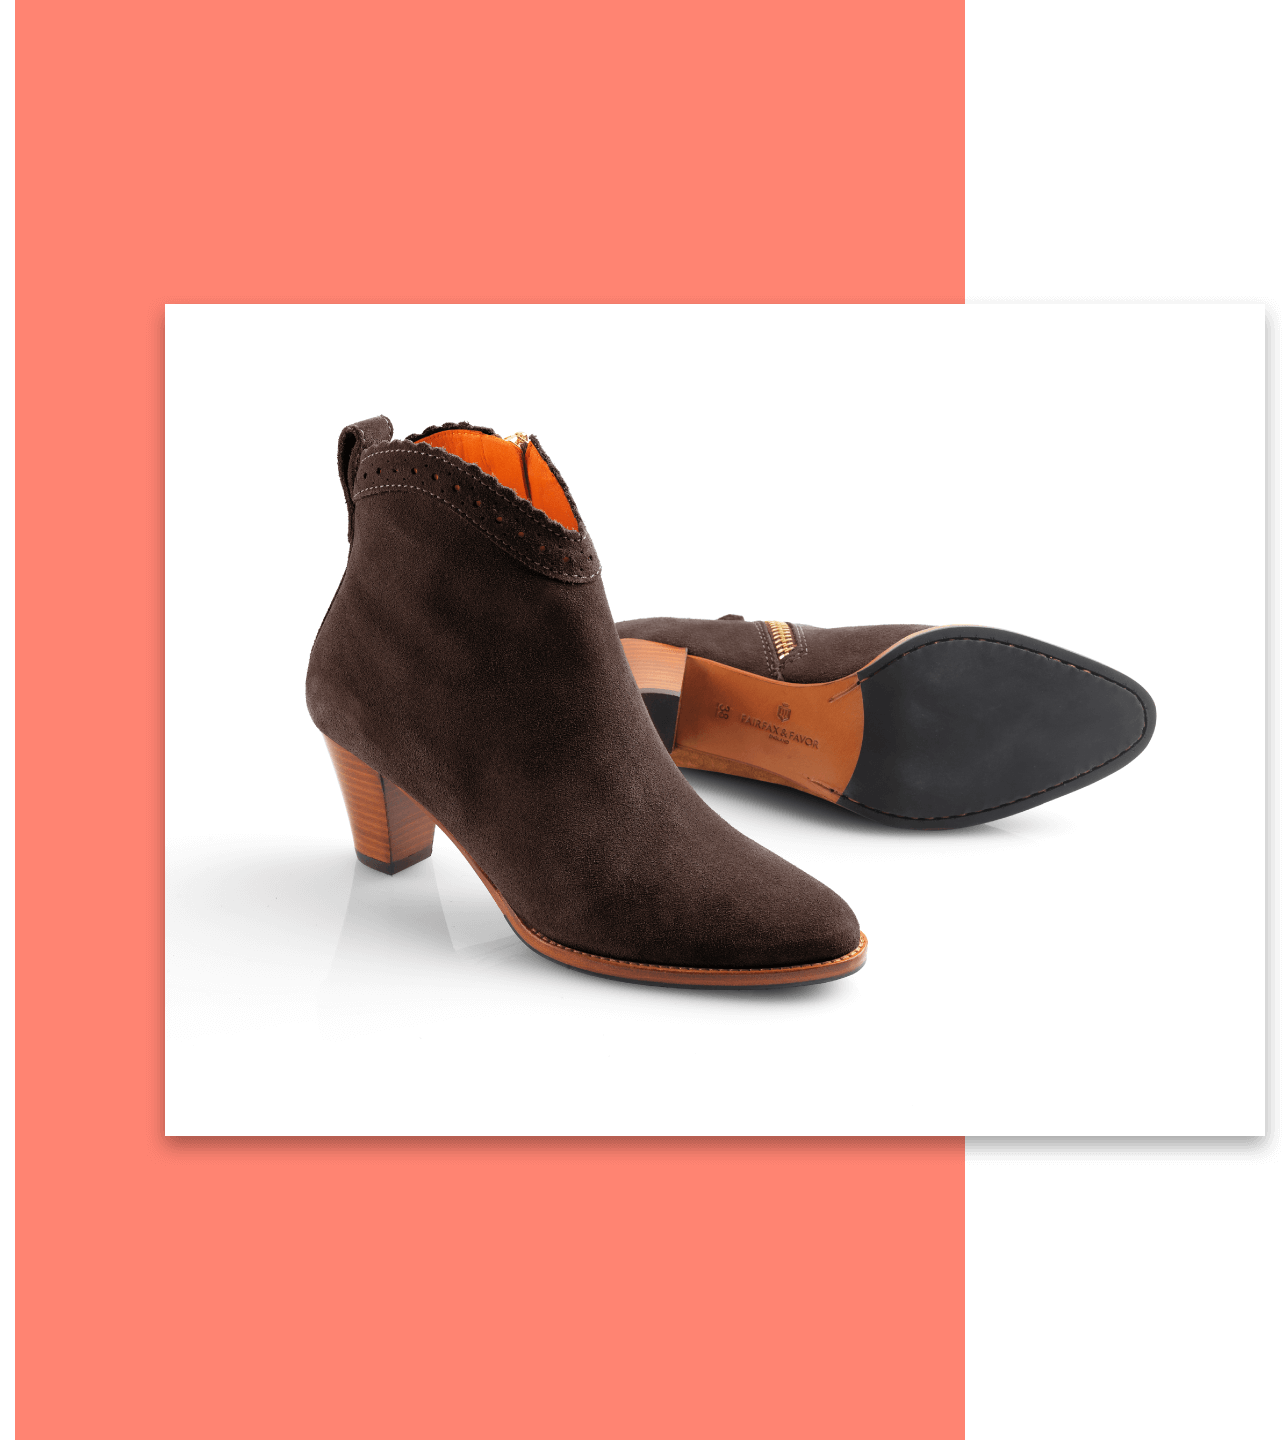 High-heeled brown ankle boots on a colorful background